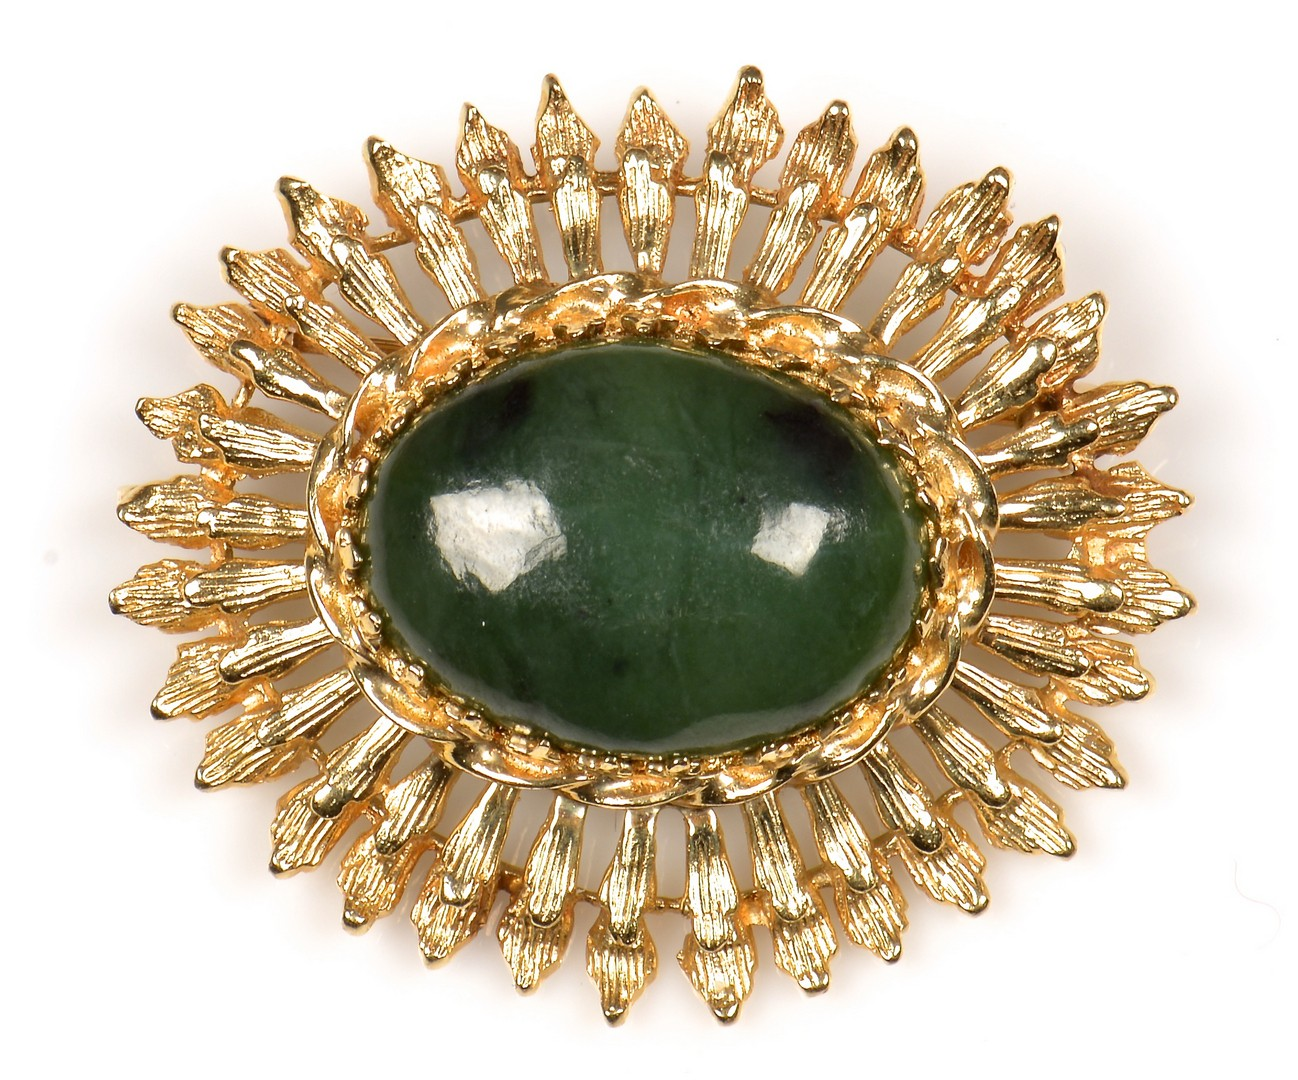 Lot 949: Grouping of 14K & Colored Stone Jewelry